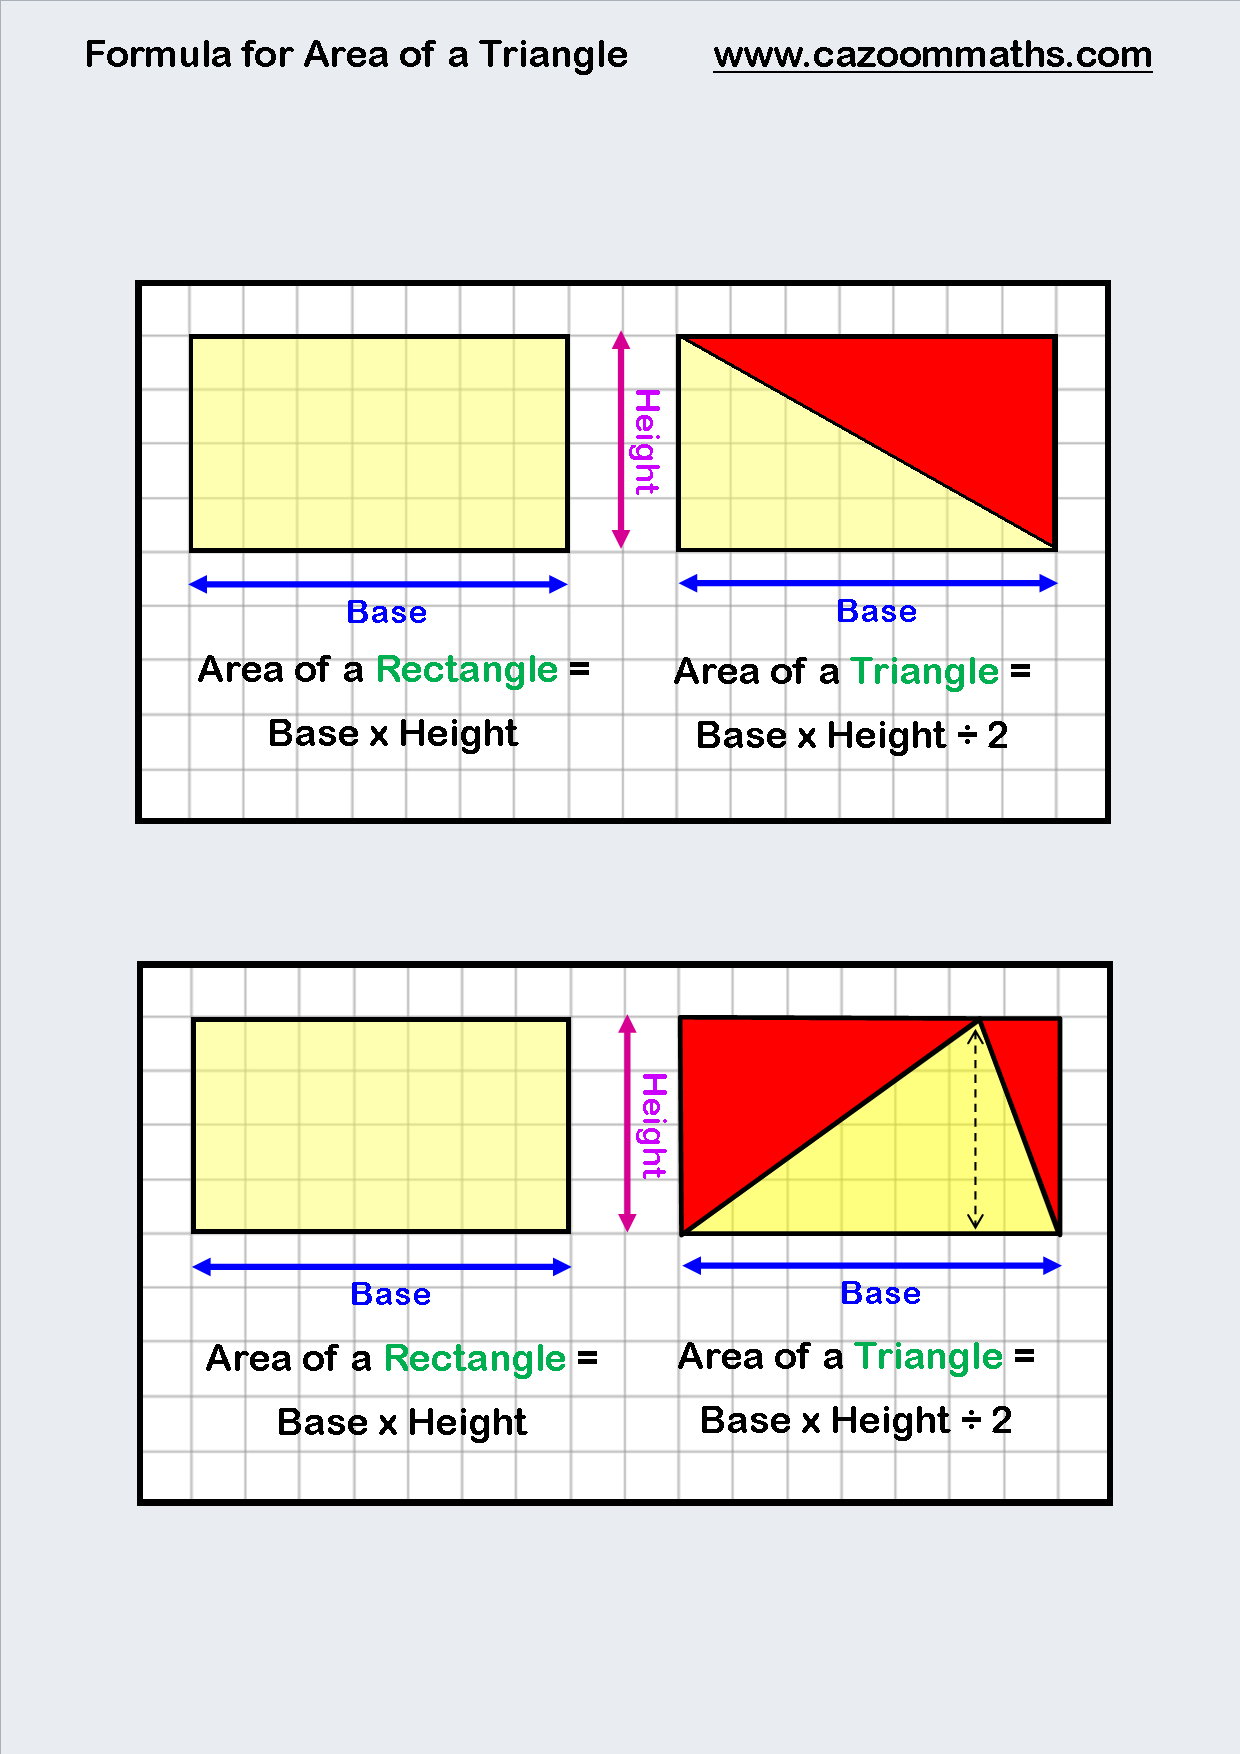 Formula for Area of a Triangle | materiale didattico | Pinterest ...